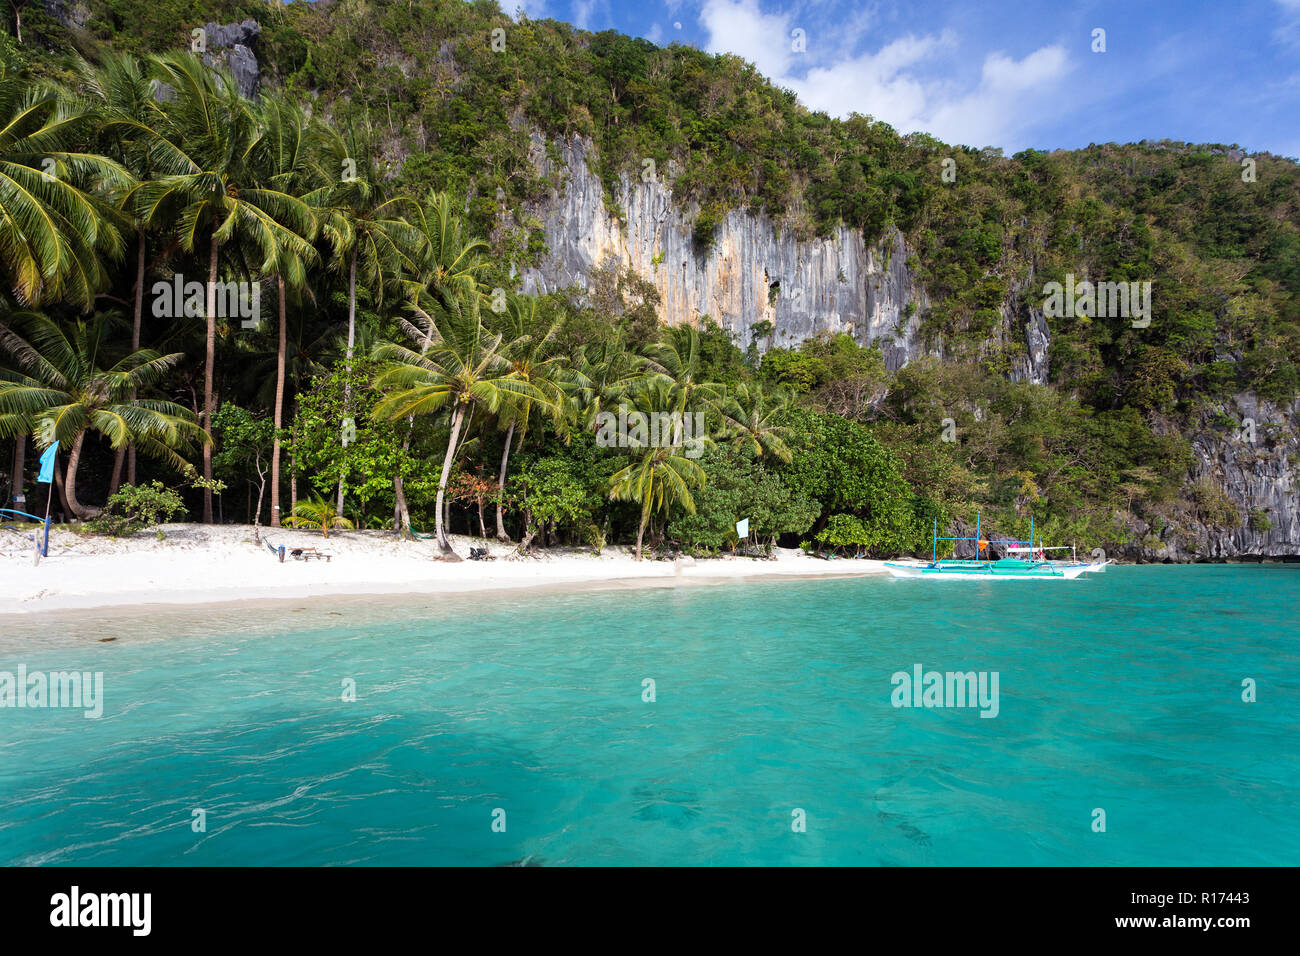 Tranquil Tropical Beach In El Nido Palawan Island